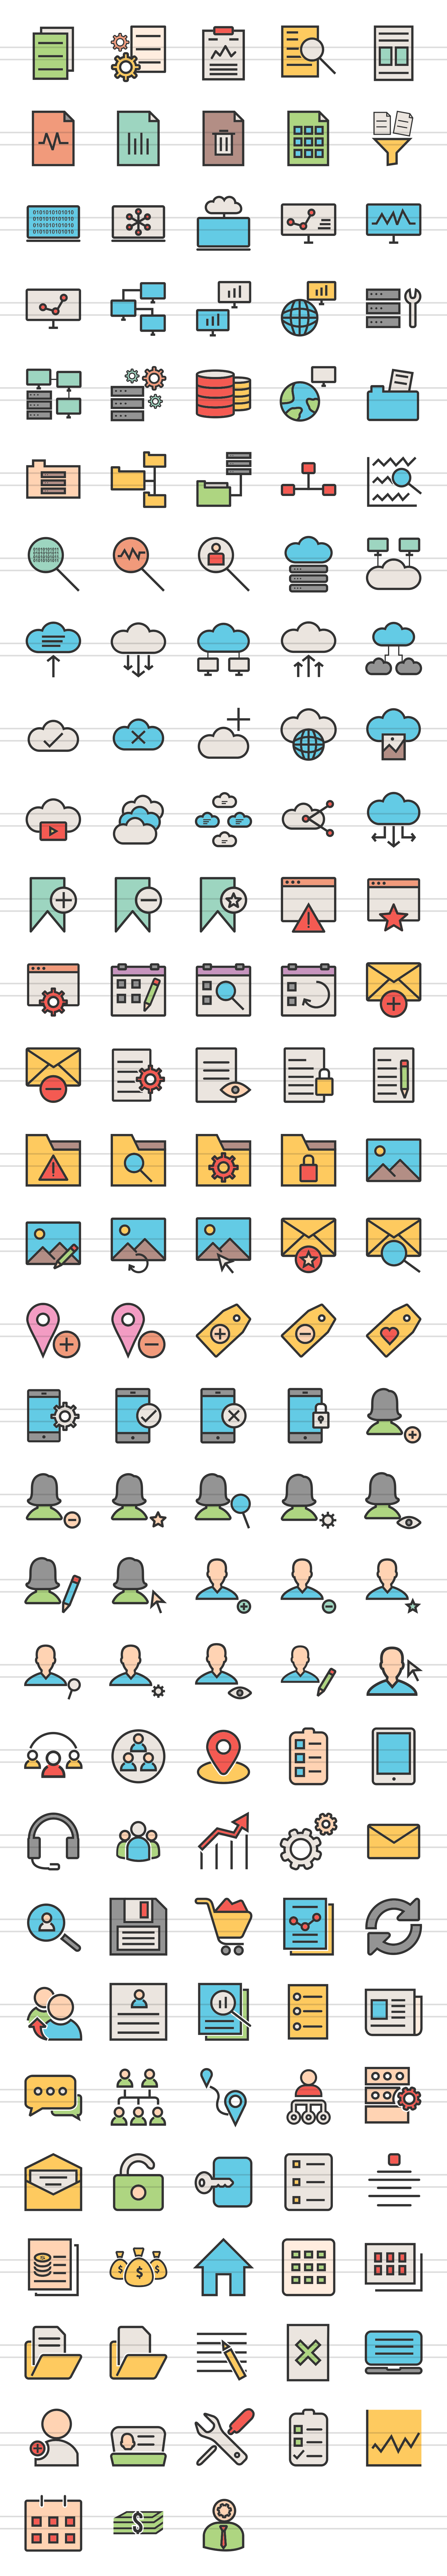 148 Admin Dashboard Filled Line Icons example image 5